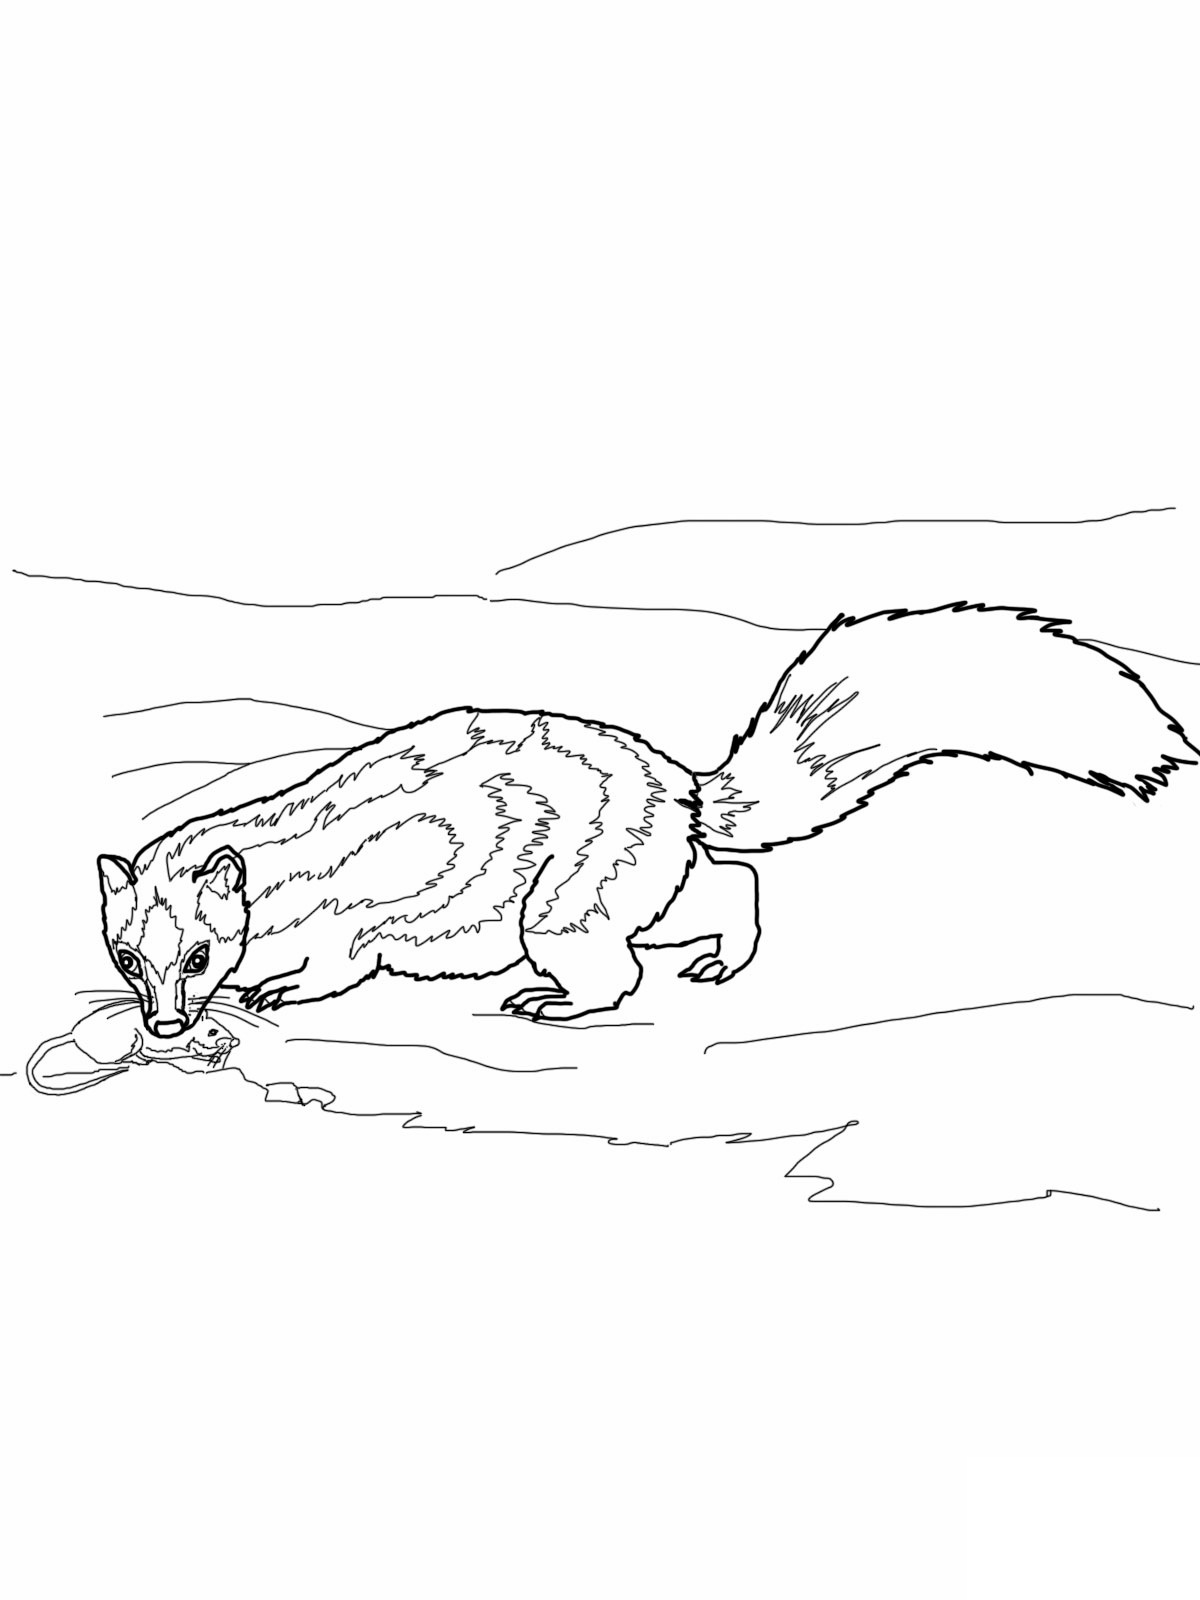 Printable Skunk Coloring Pages For Kids | 1600x1200